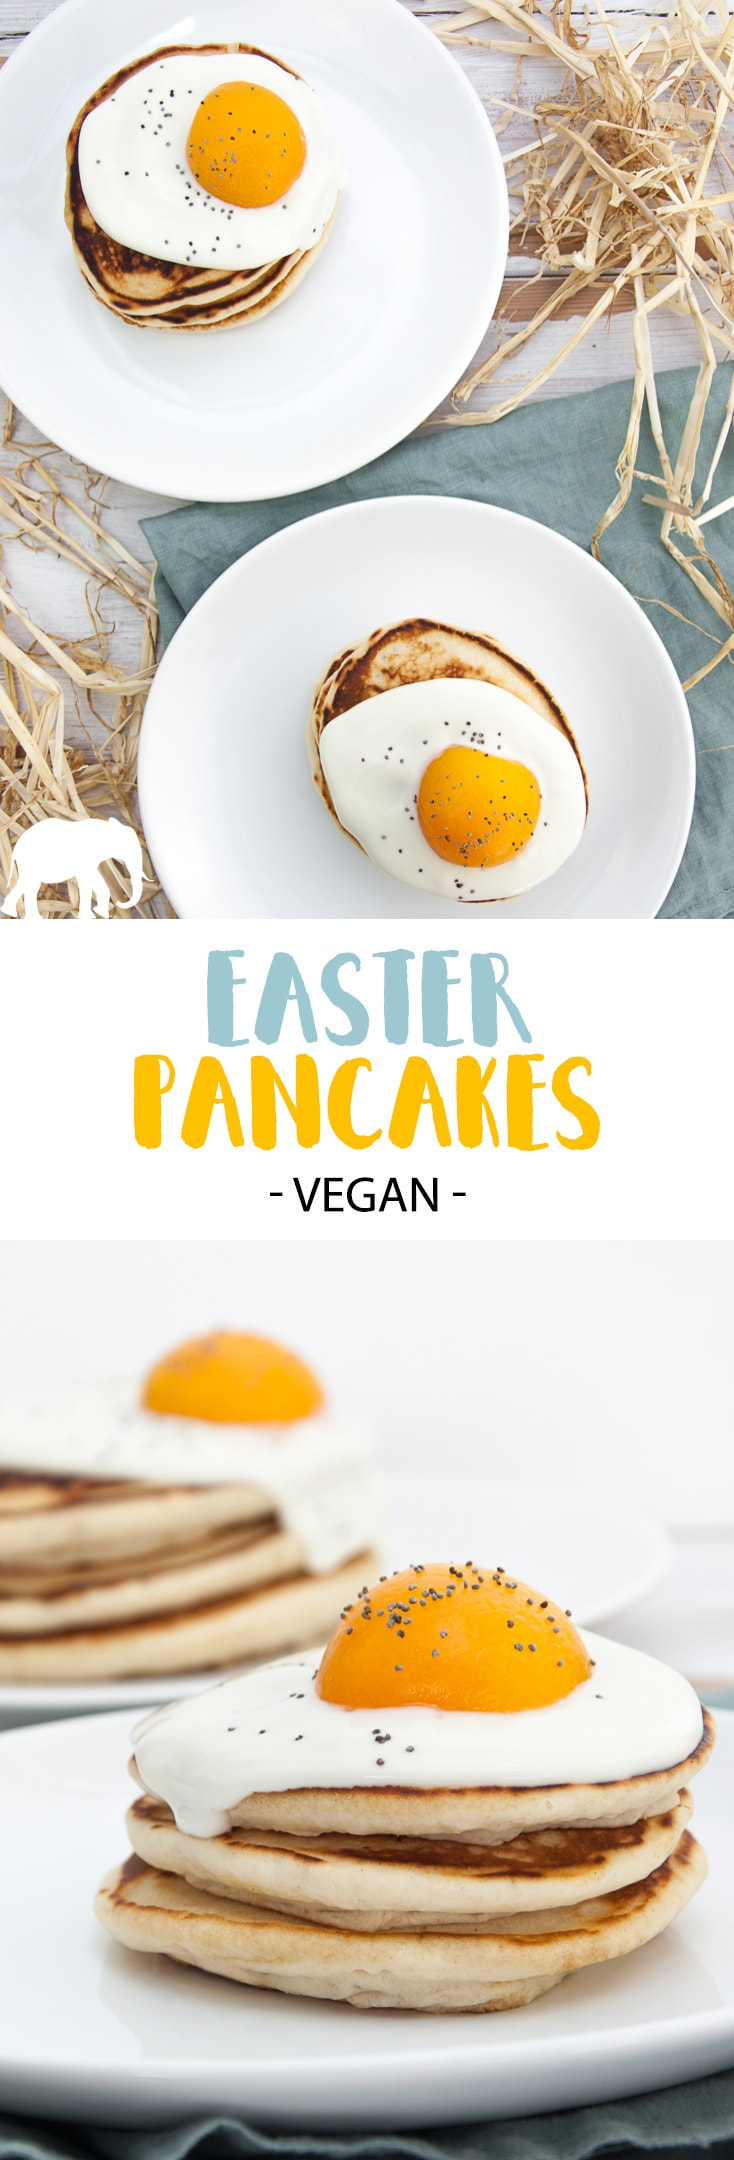 Vegan Easter Pancakes #vegan #easter #pancakes #plantbased #breakfast #brunch